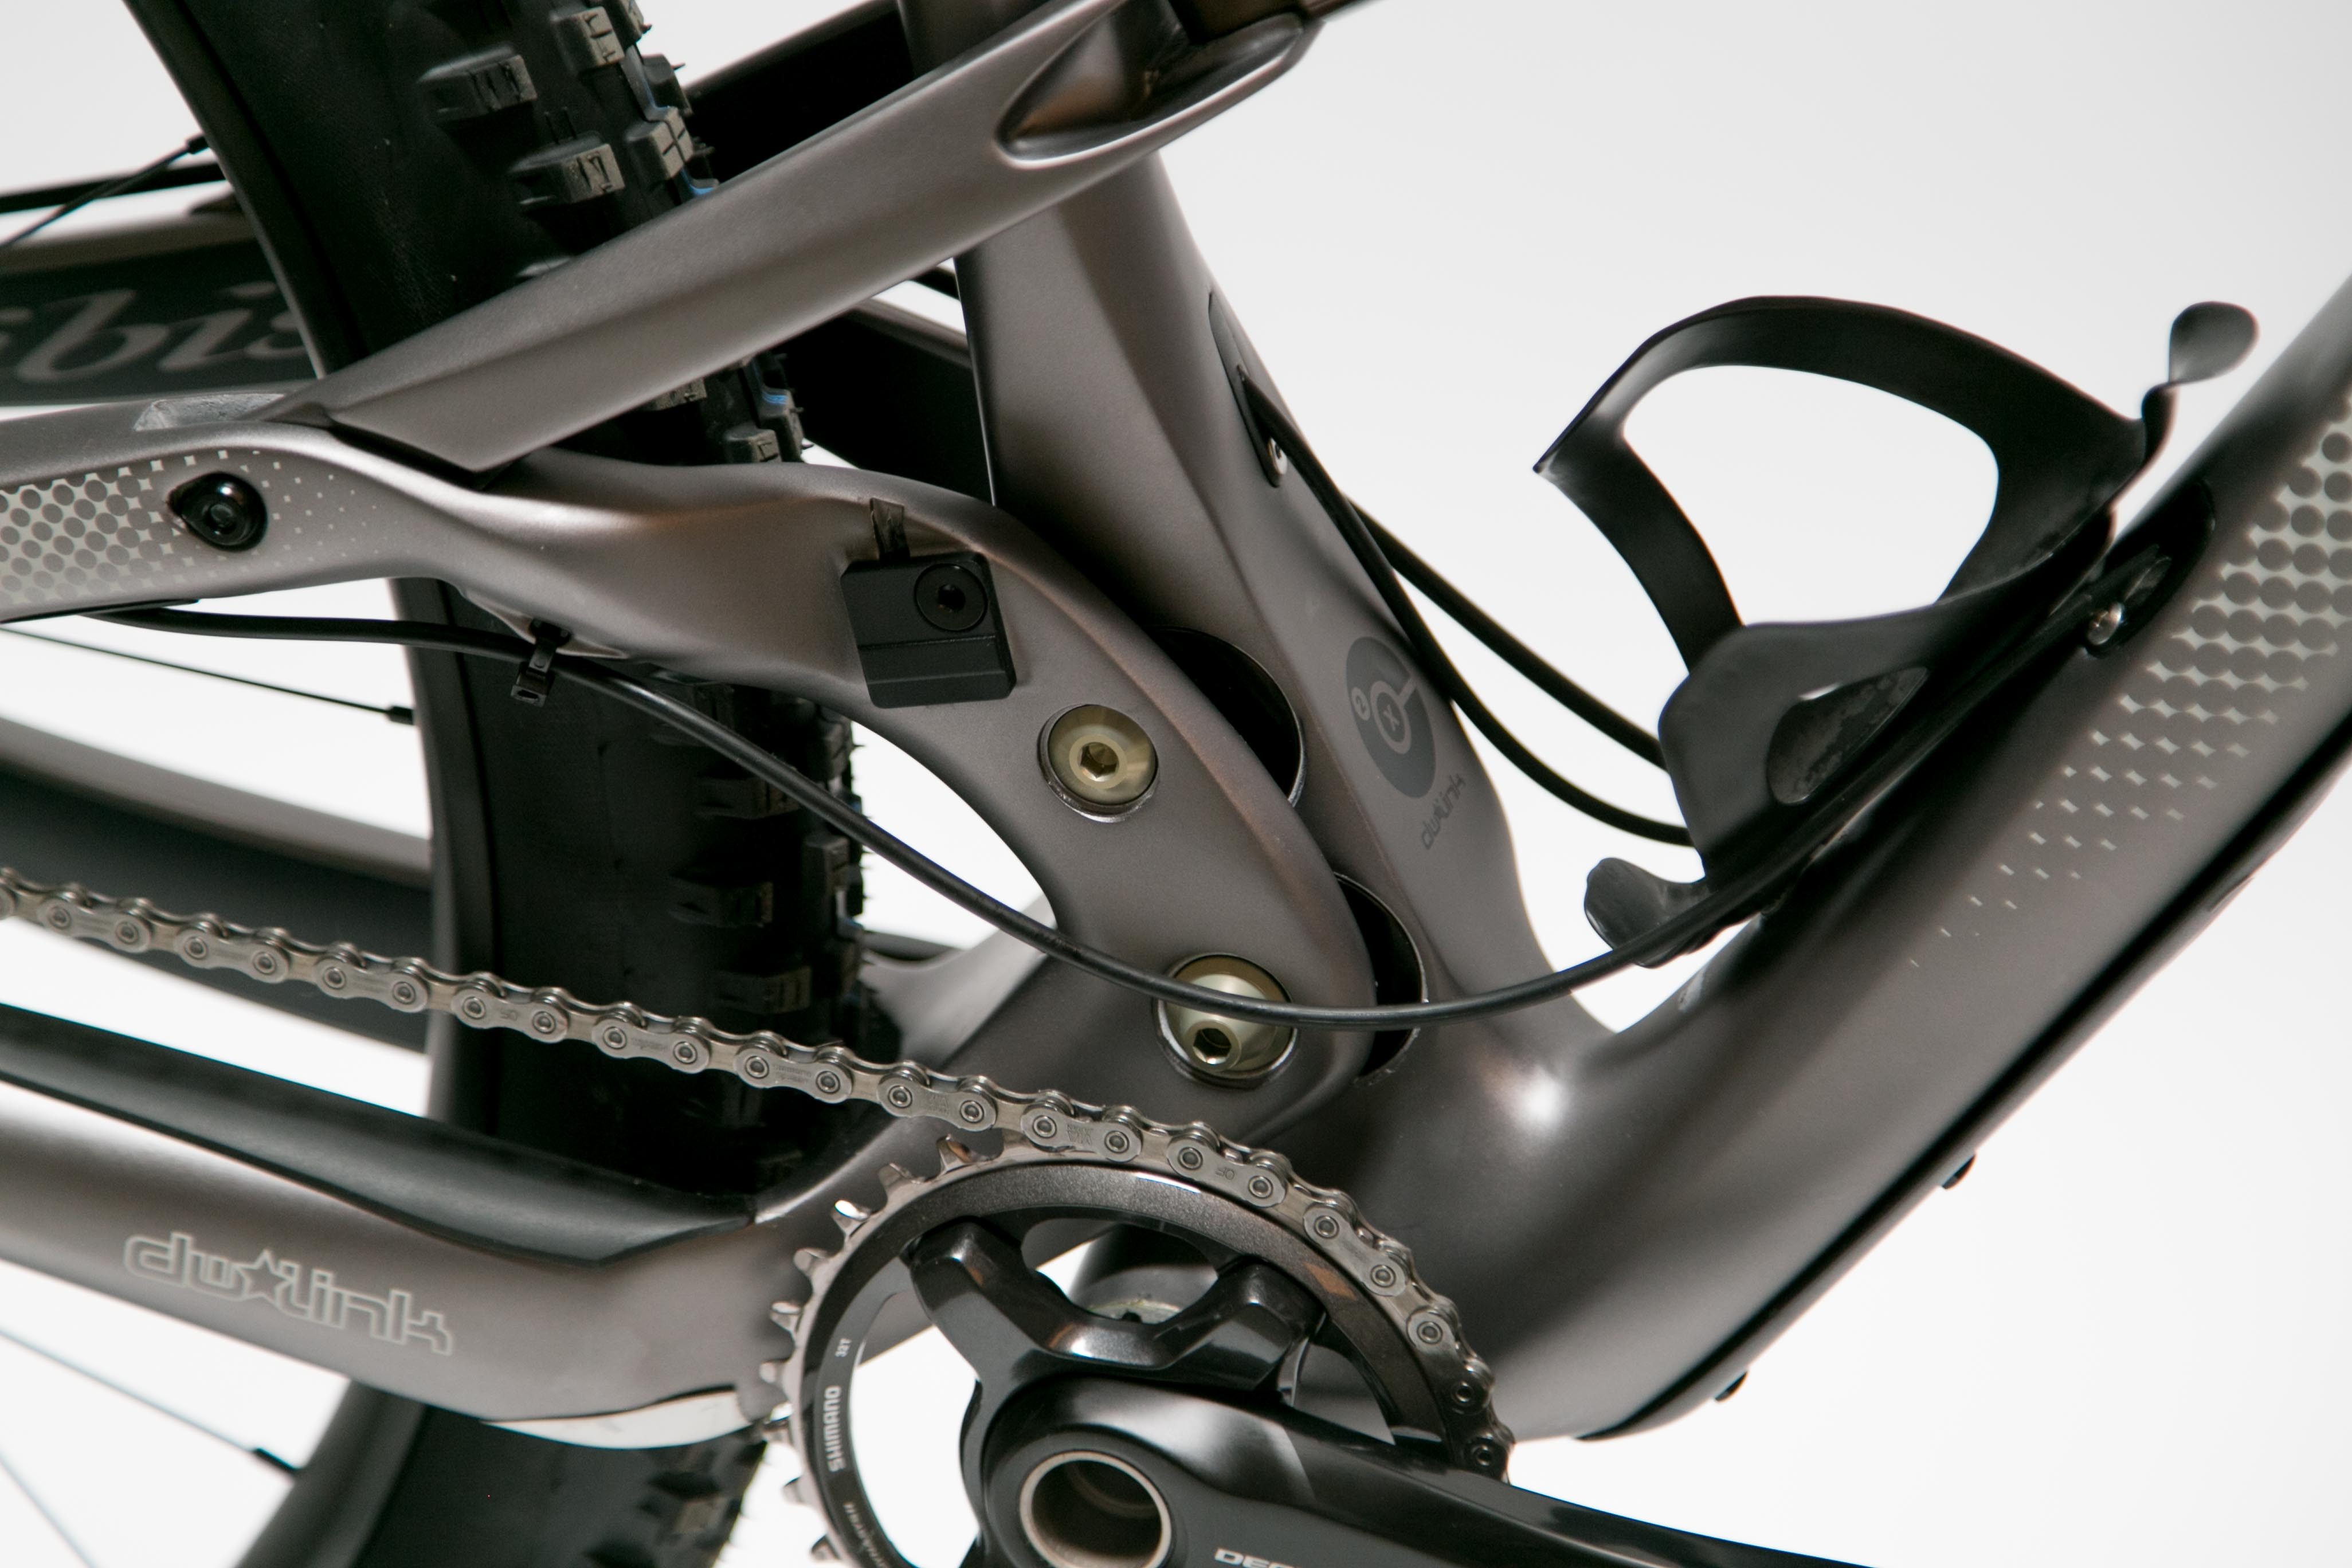 The V3 Ripley LS drops compatibility with SRAM 2x FD and Shimano Triples.